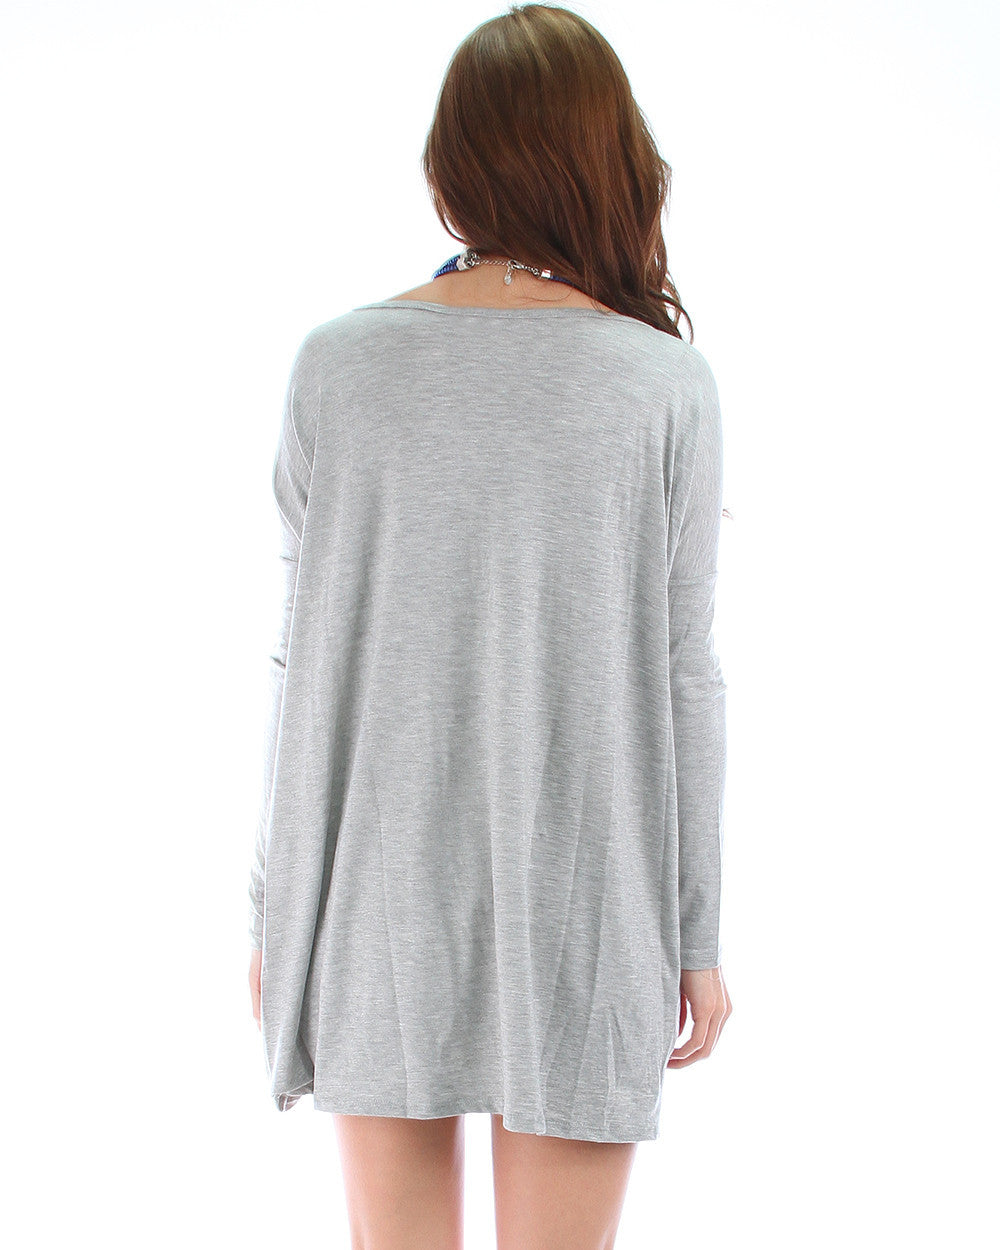 Over-Sized Long Sleeve Tunic Top In Grey